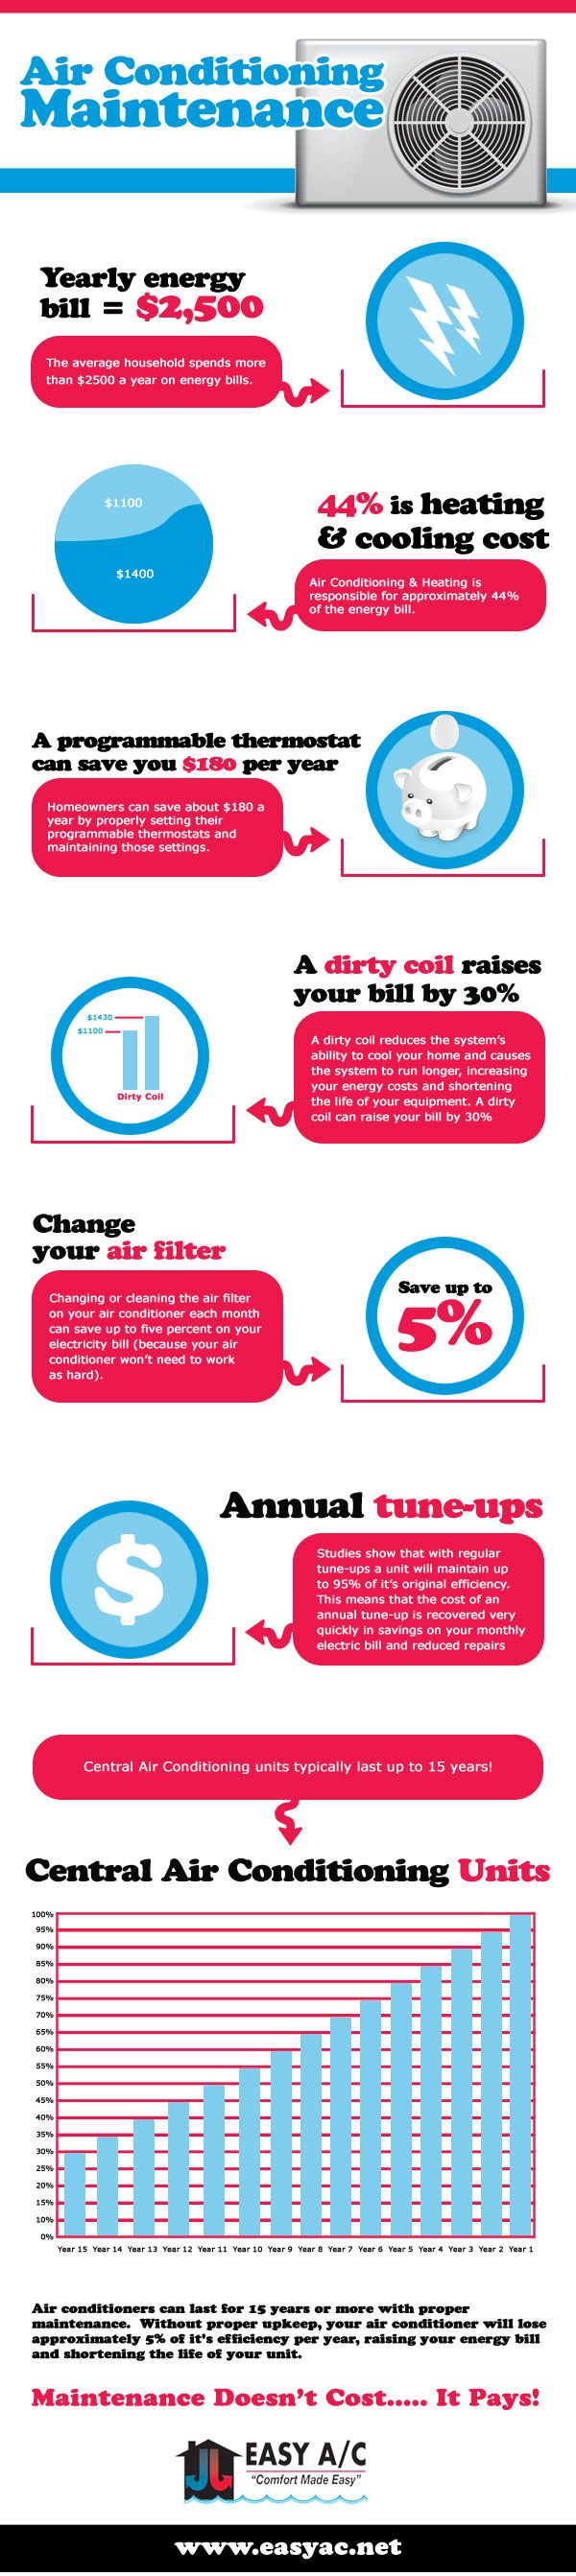 Air Conditioner Maintenance Infographic Air Conditioning Maintenance Air Conditioner Maintenance Air Conditioning Units